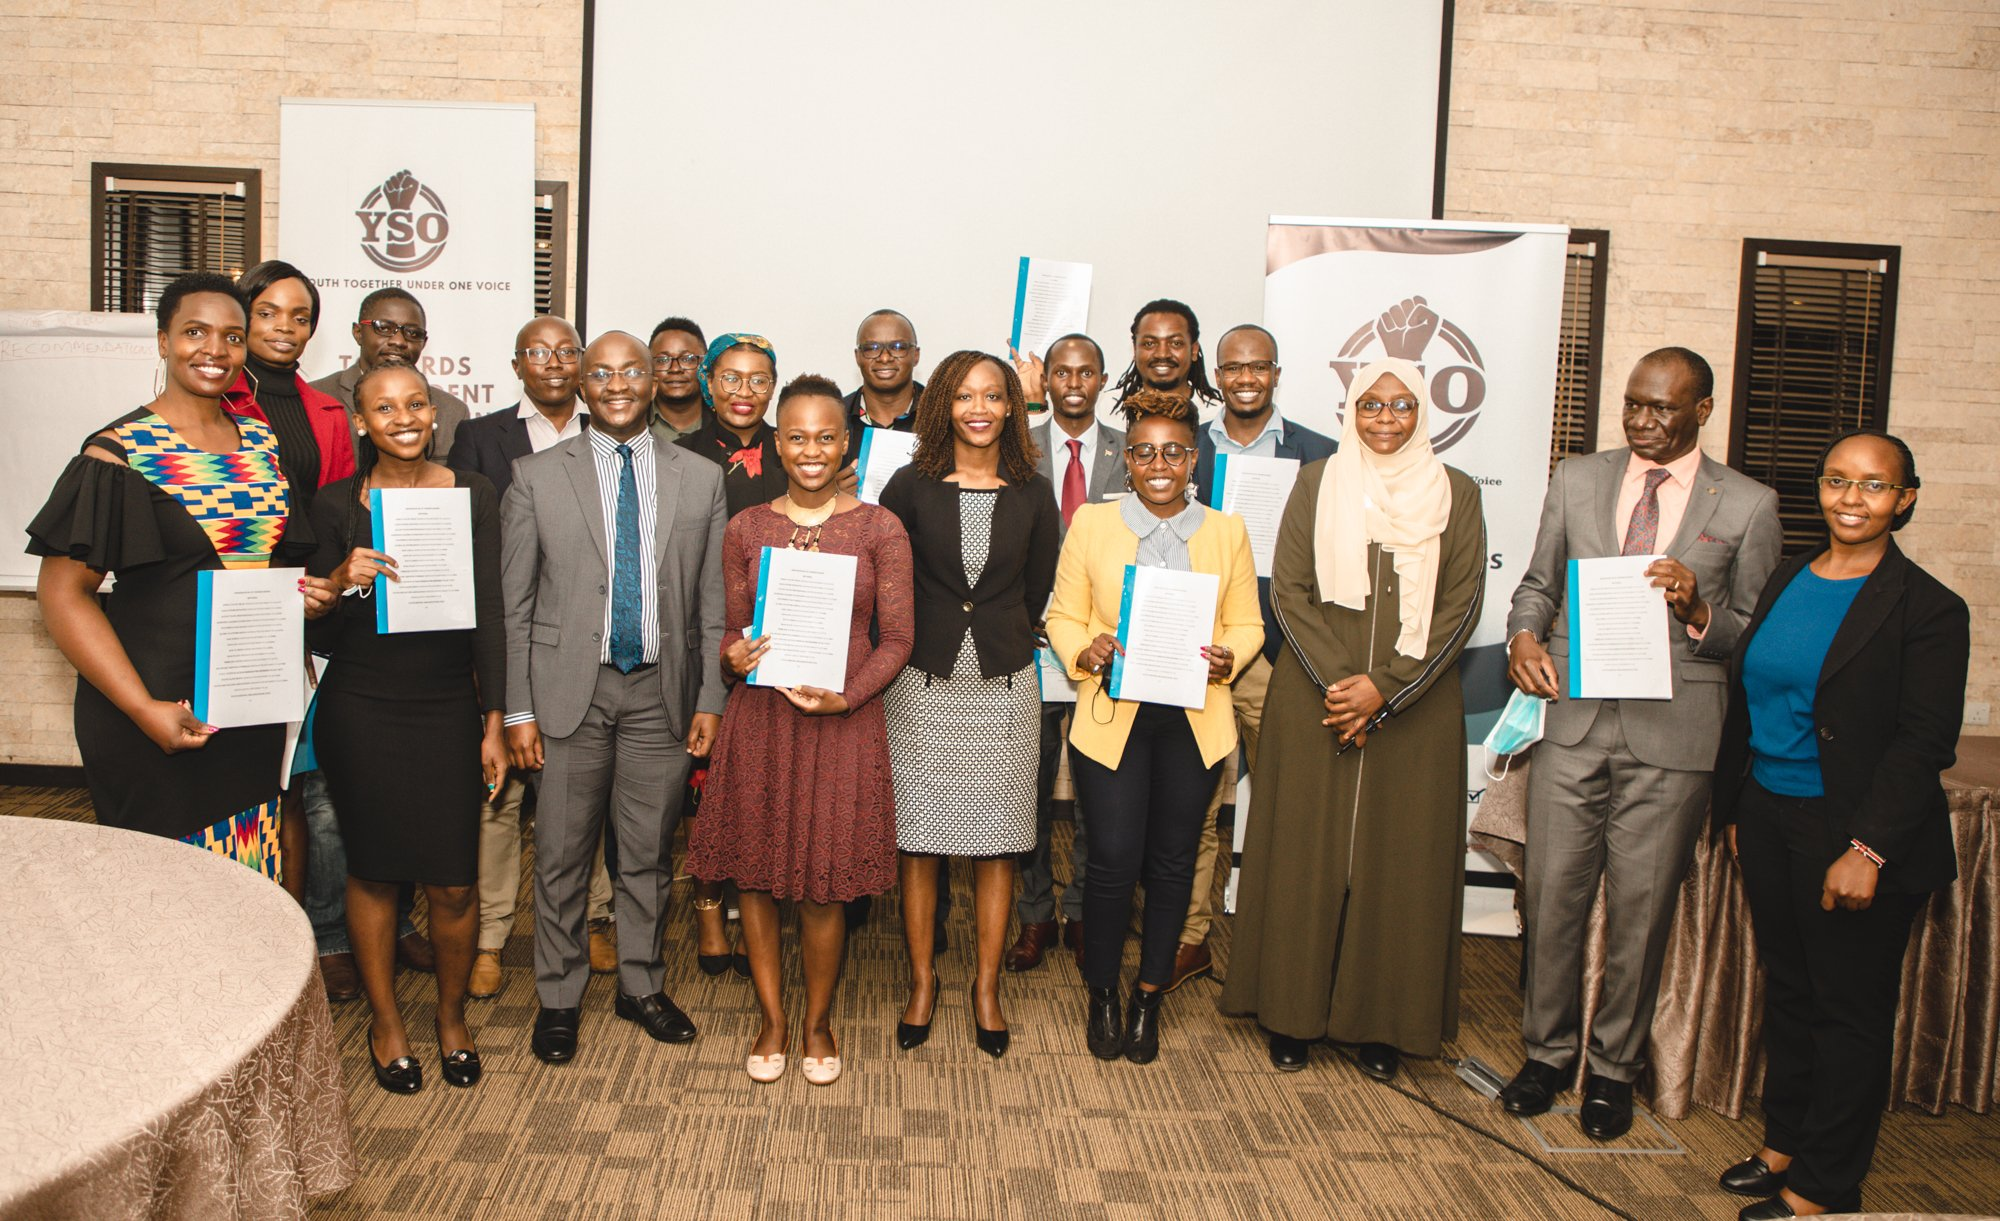 YSO(Youth-Serving Organizations)-Building strong coalitions, networks and partnerships to advocate for social, economical and political empowerment of young people in Kenya.#opportunitiesforall